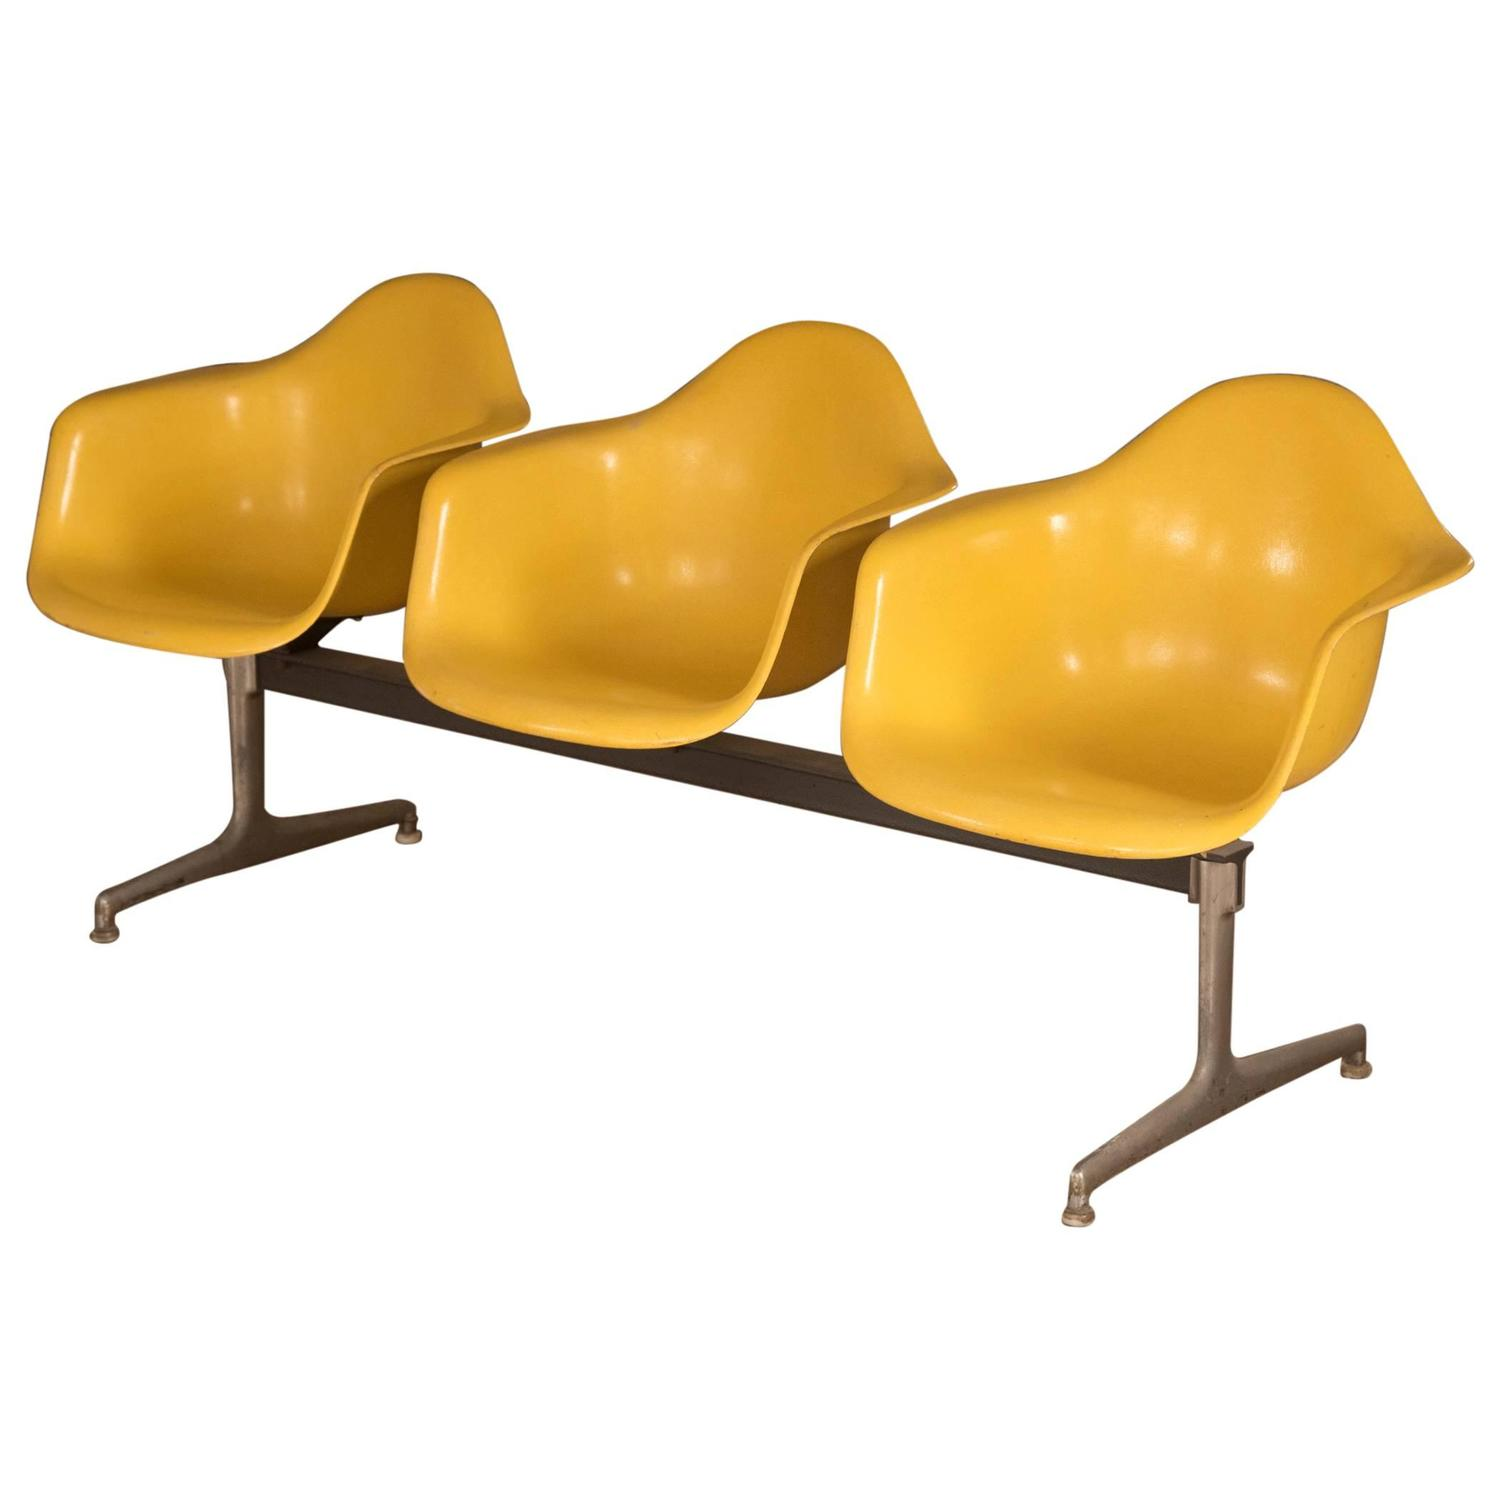 charles and ray eames three seat shell tandem chairs for herman miller at 1stdibs